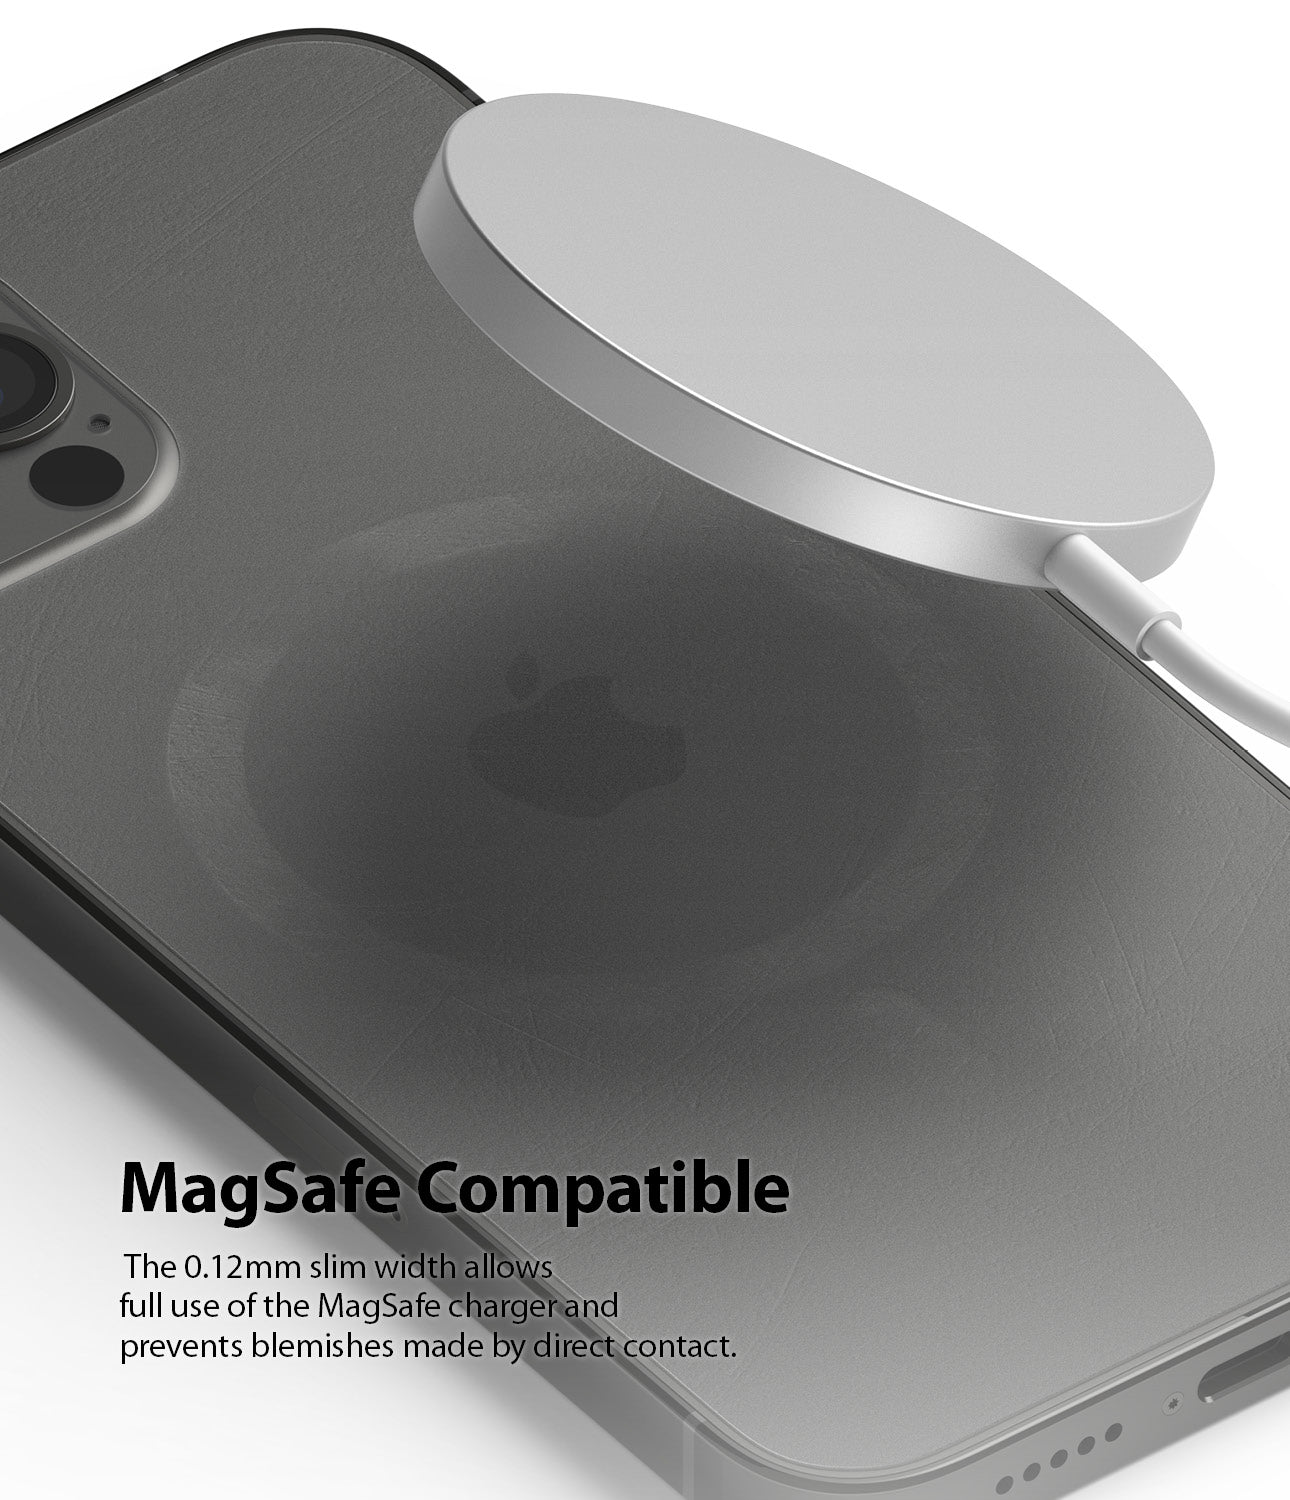 magsafe compatible - the 0.12mm slim width